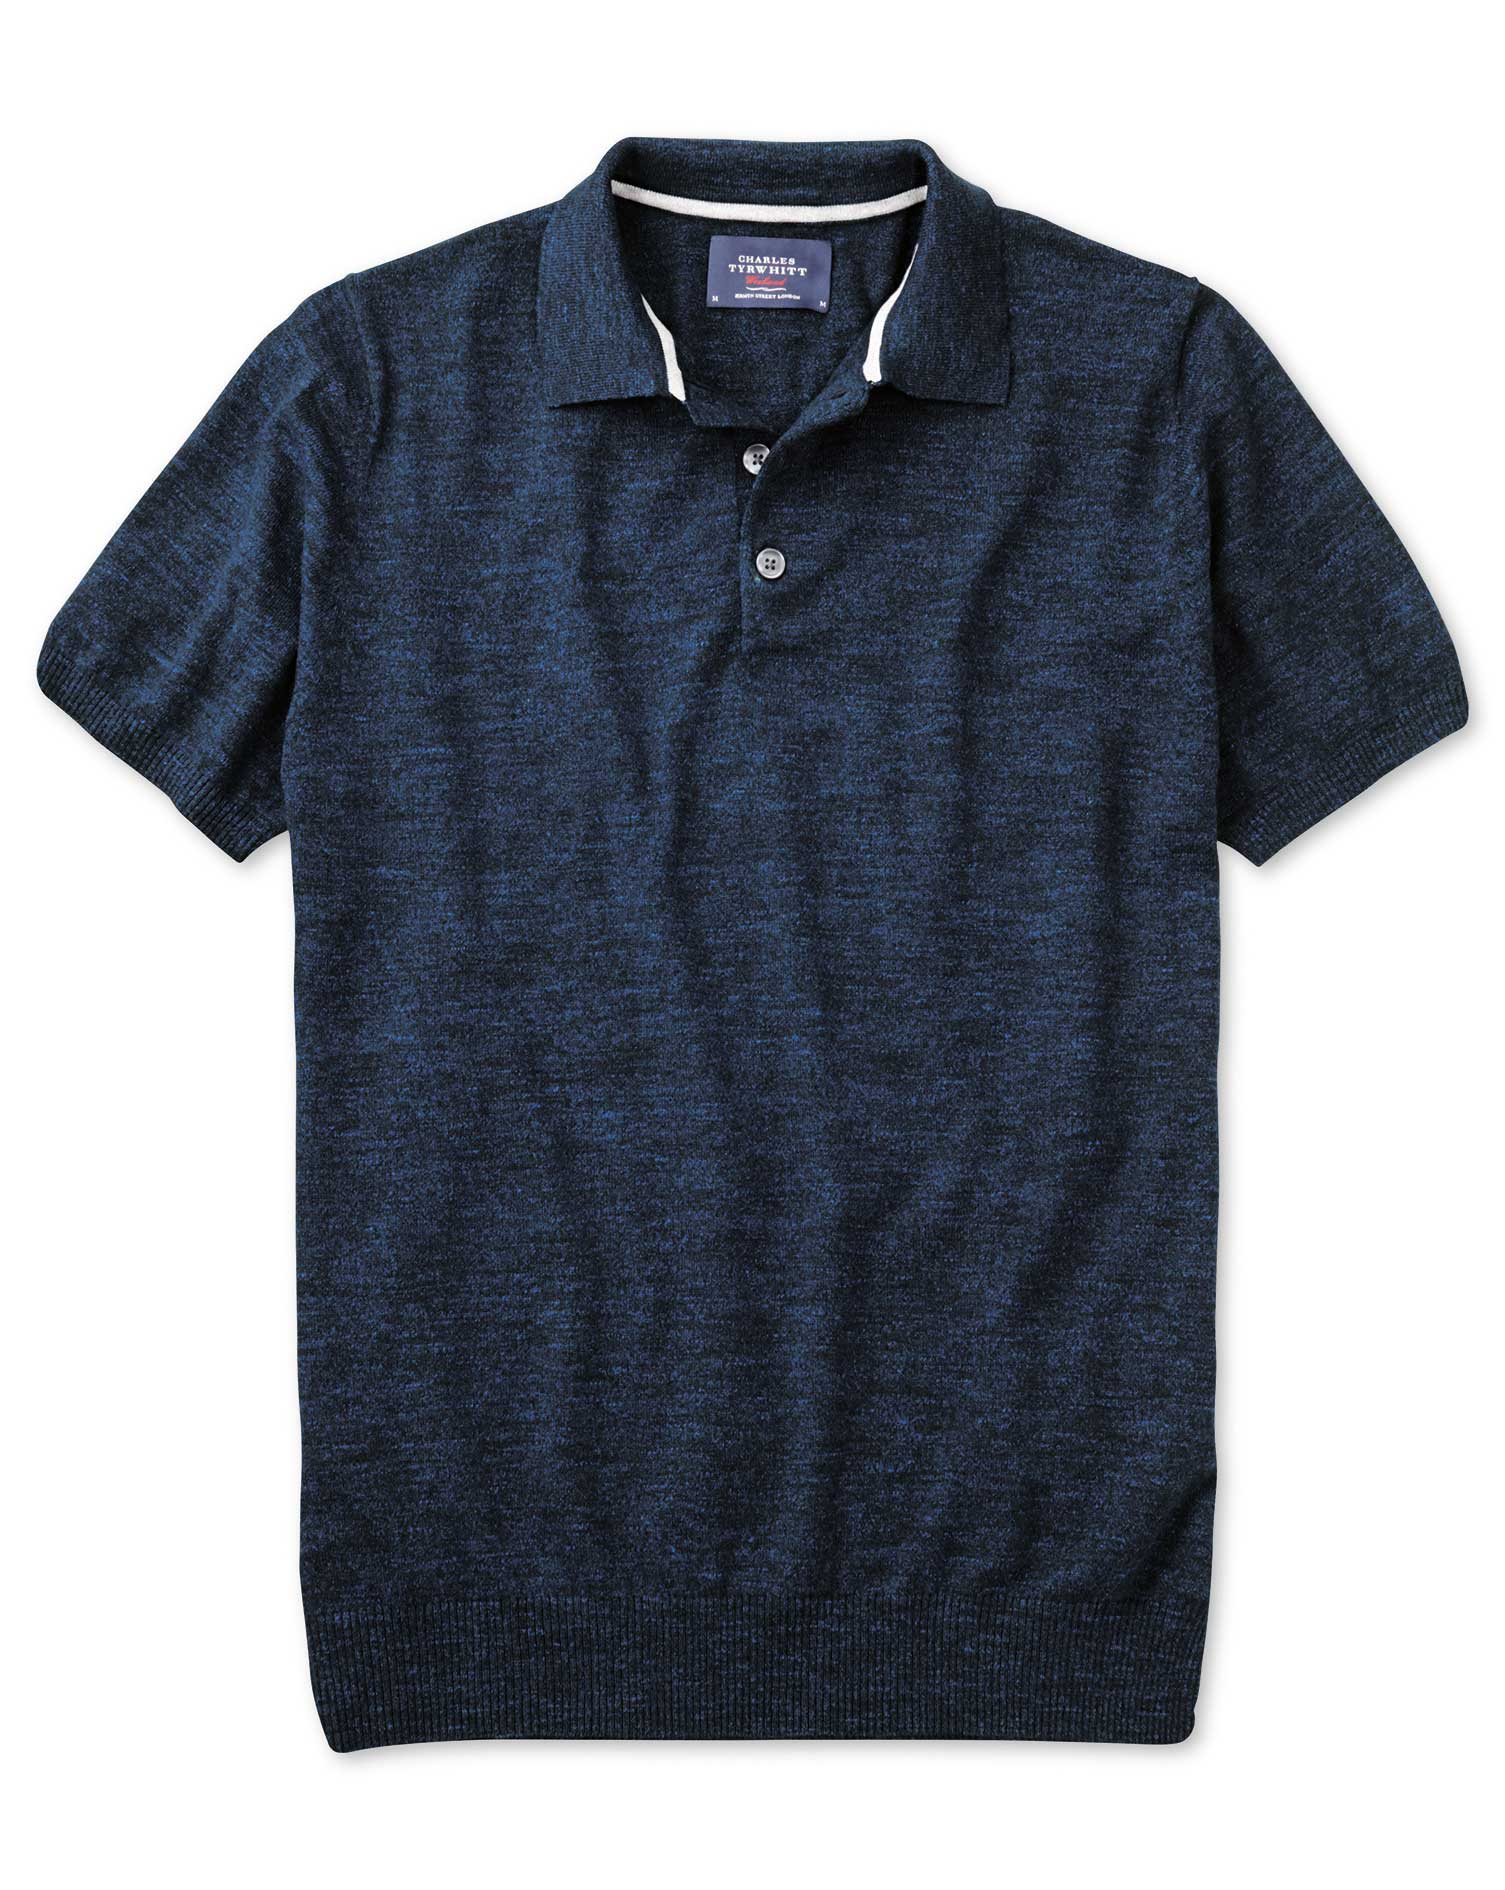 Navy Blue Heather Short Sleeve Cotton Polo Collar Cotton Jumper Size Large by Charles Tyrwhitt